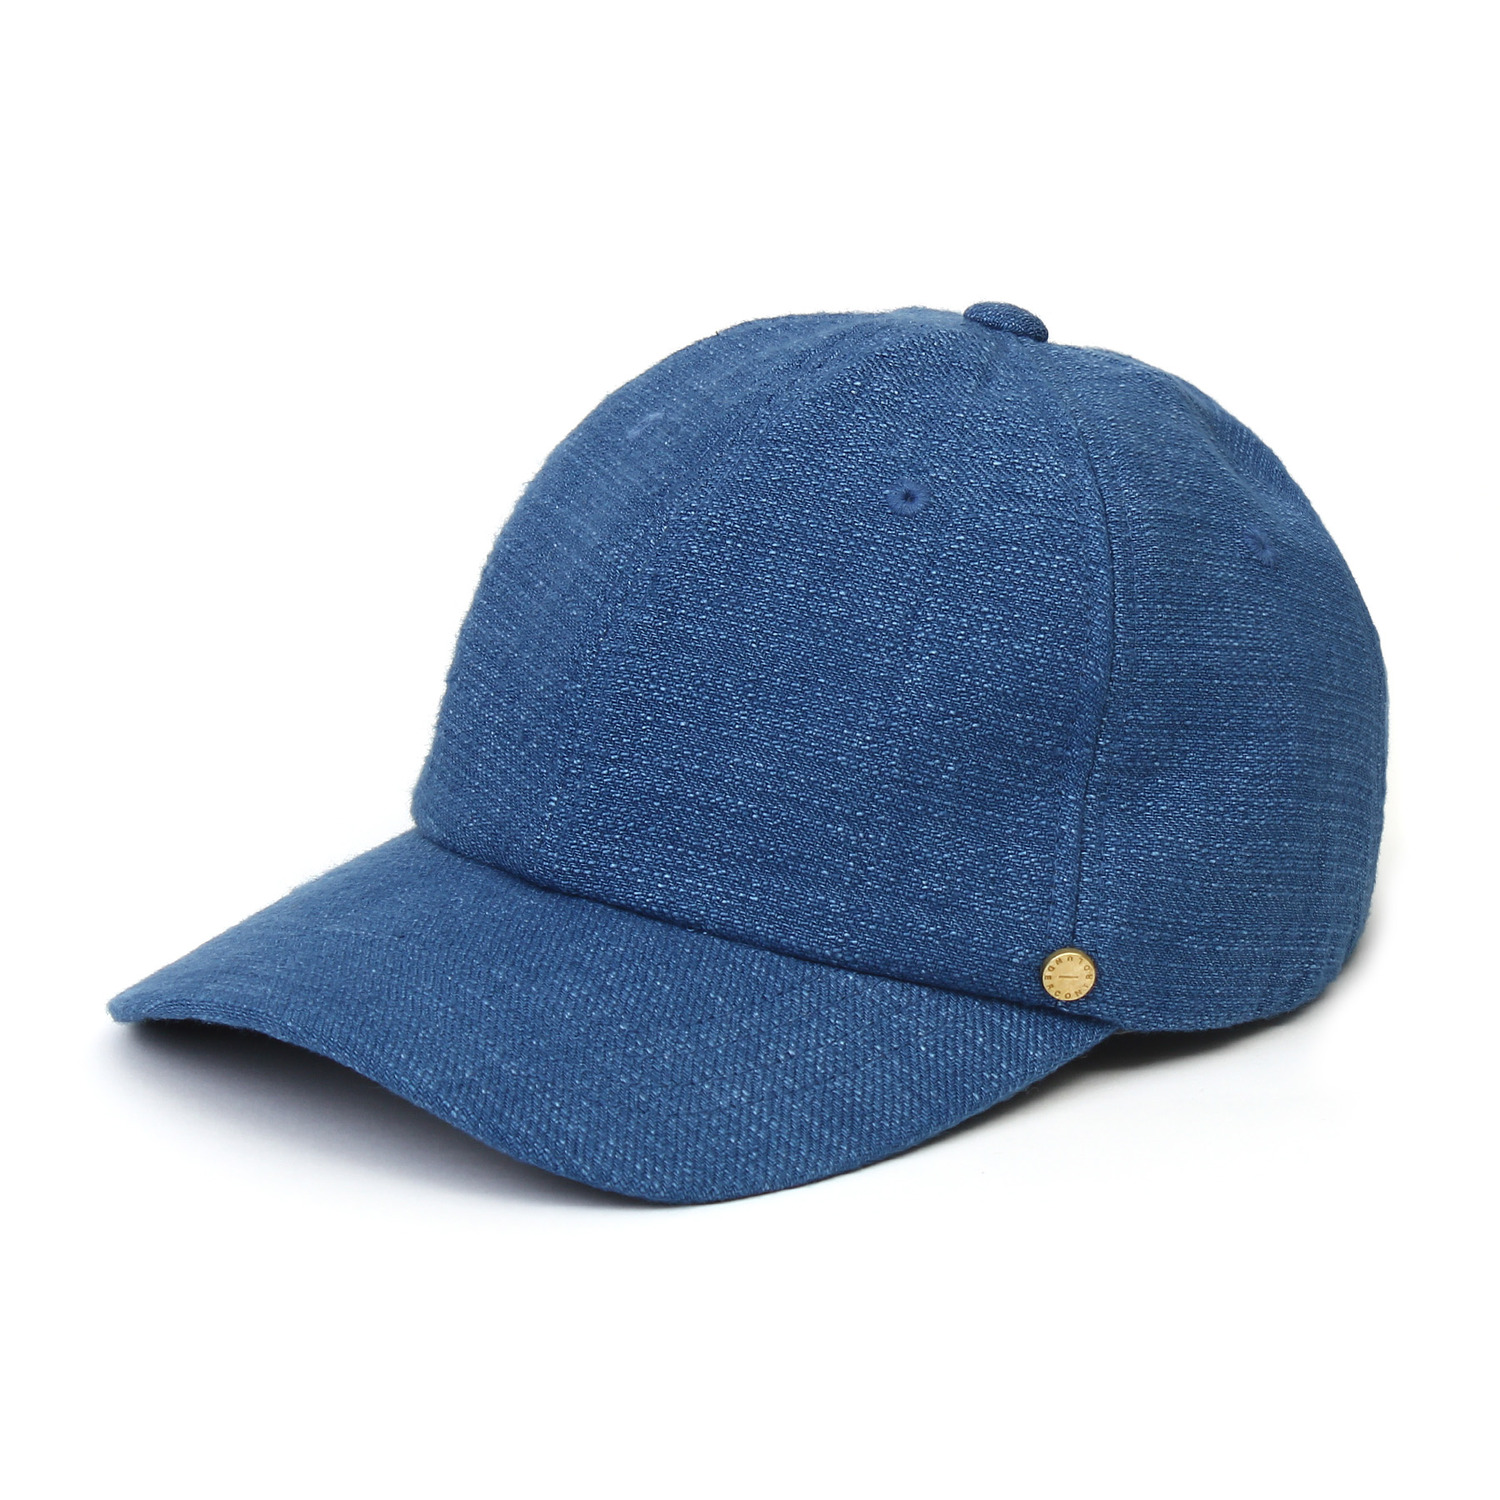 6PANNEL BALL CAP / JERSEY INDIGO / L DENIM